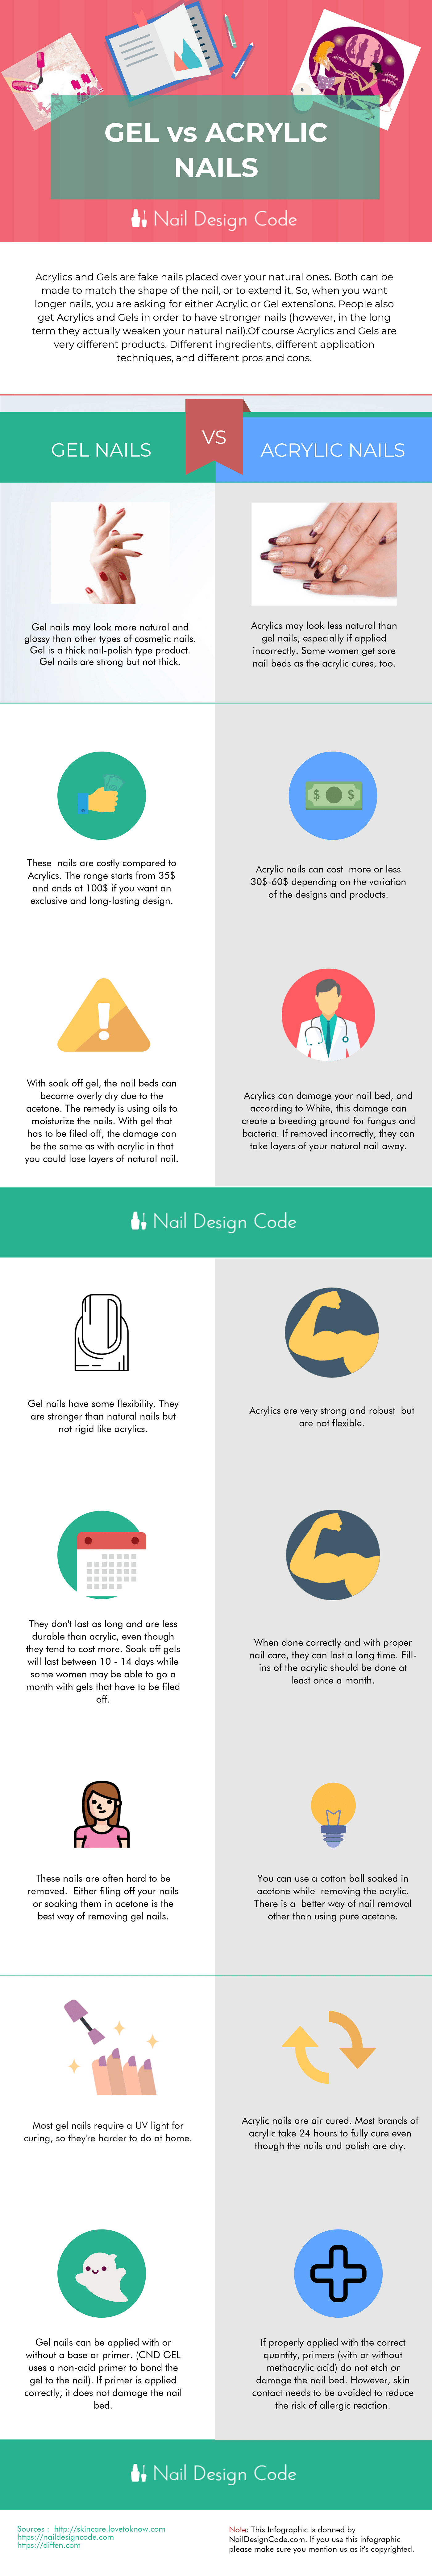 Acrylic nails vs Gel nails: What are the differences Infographic